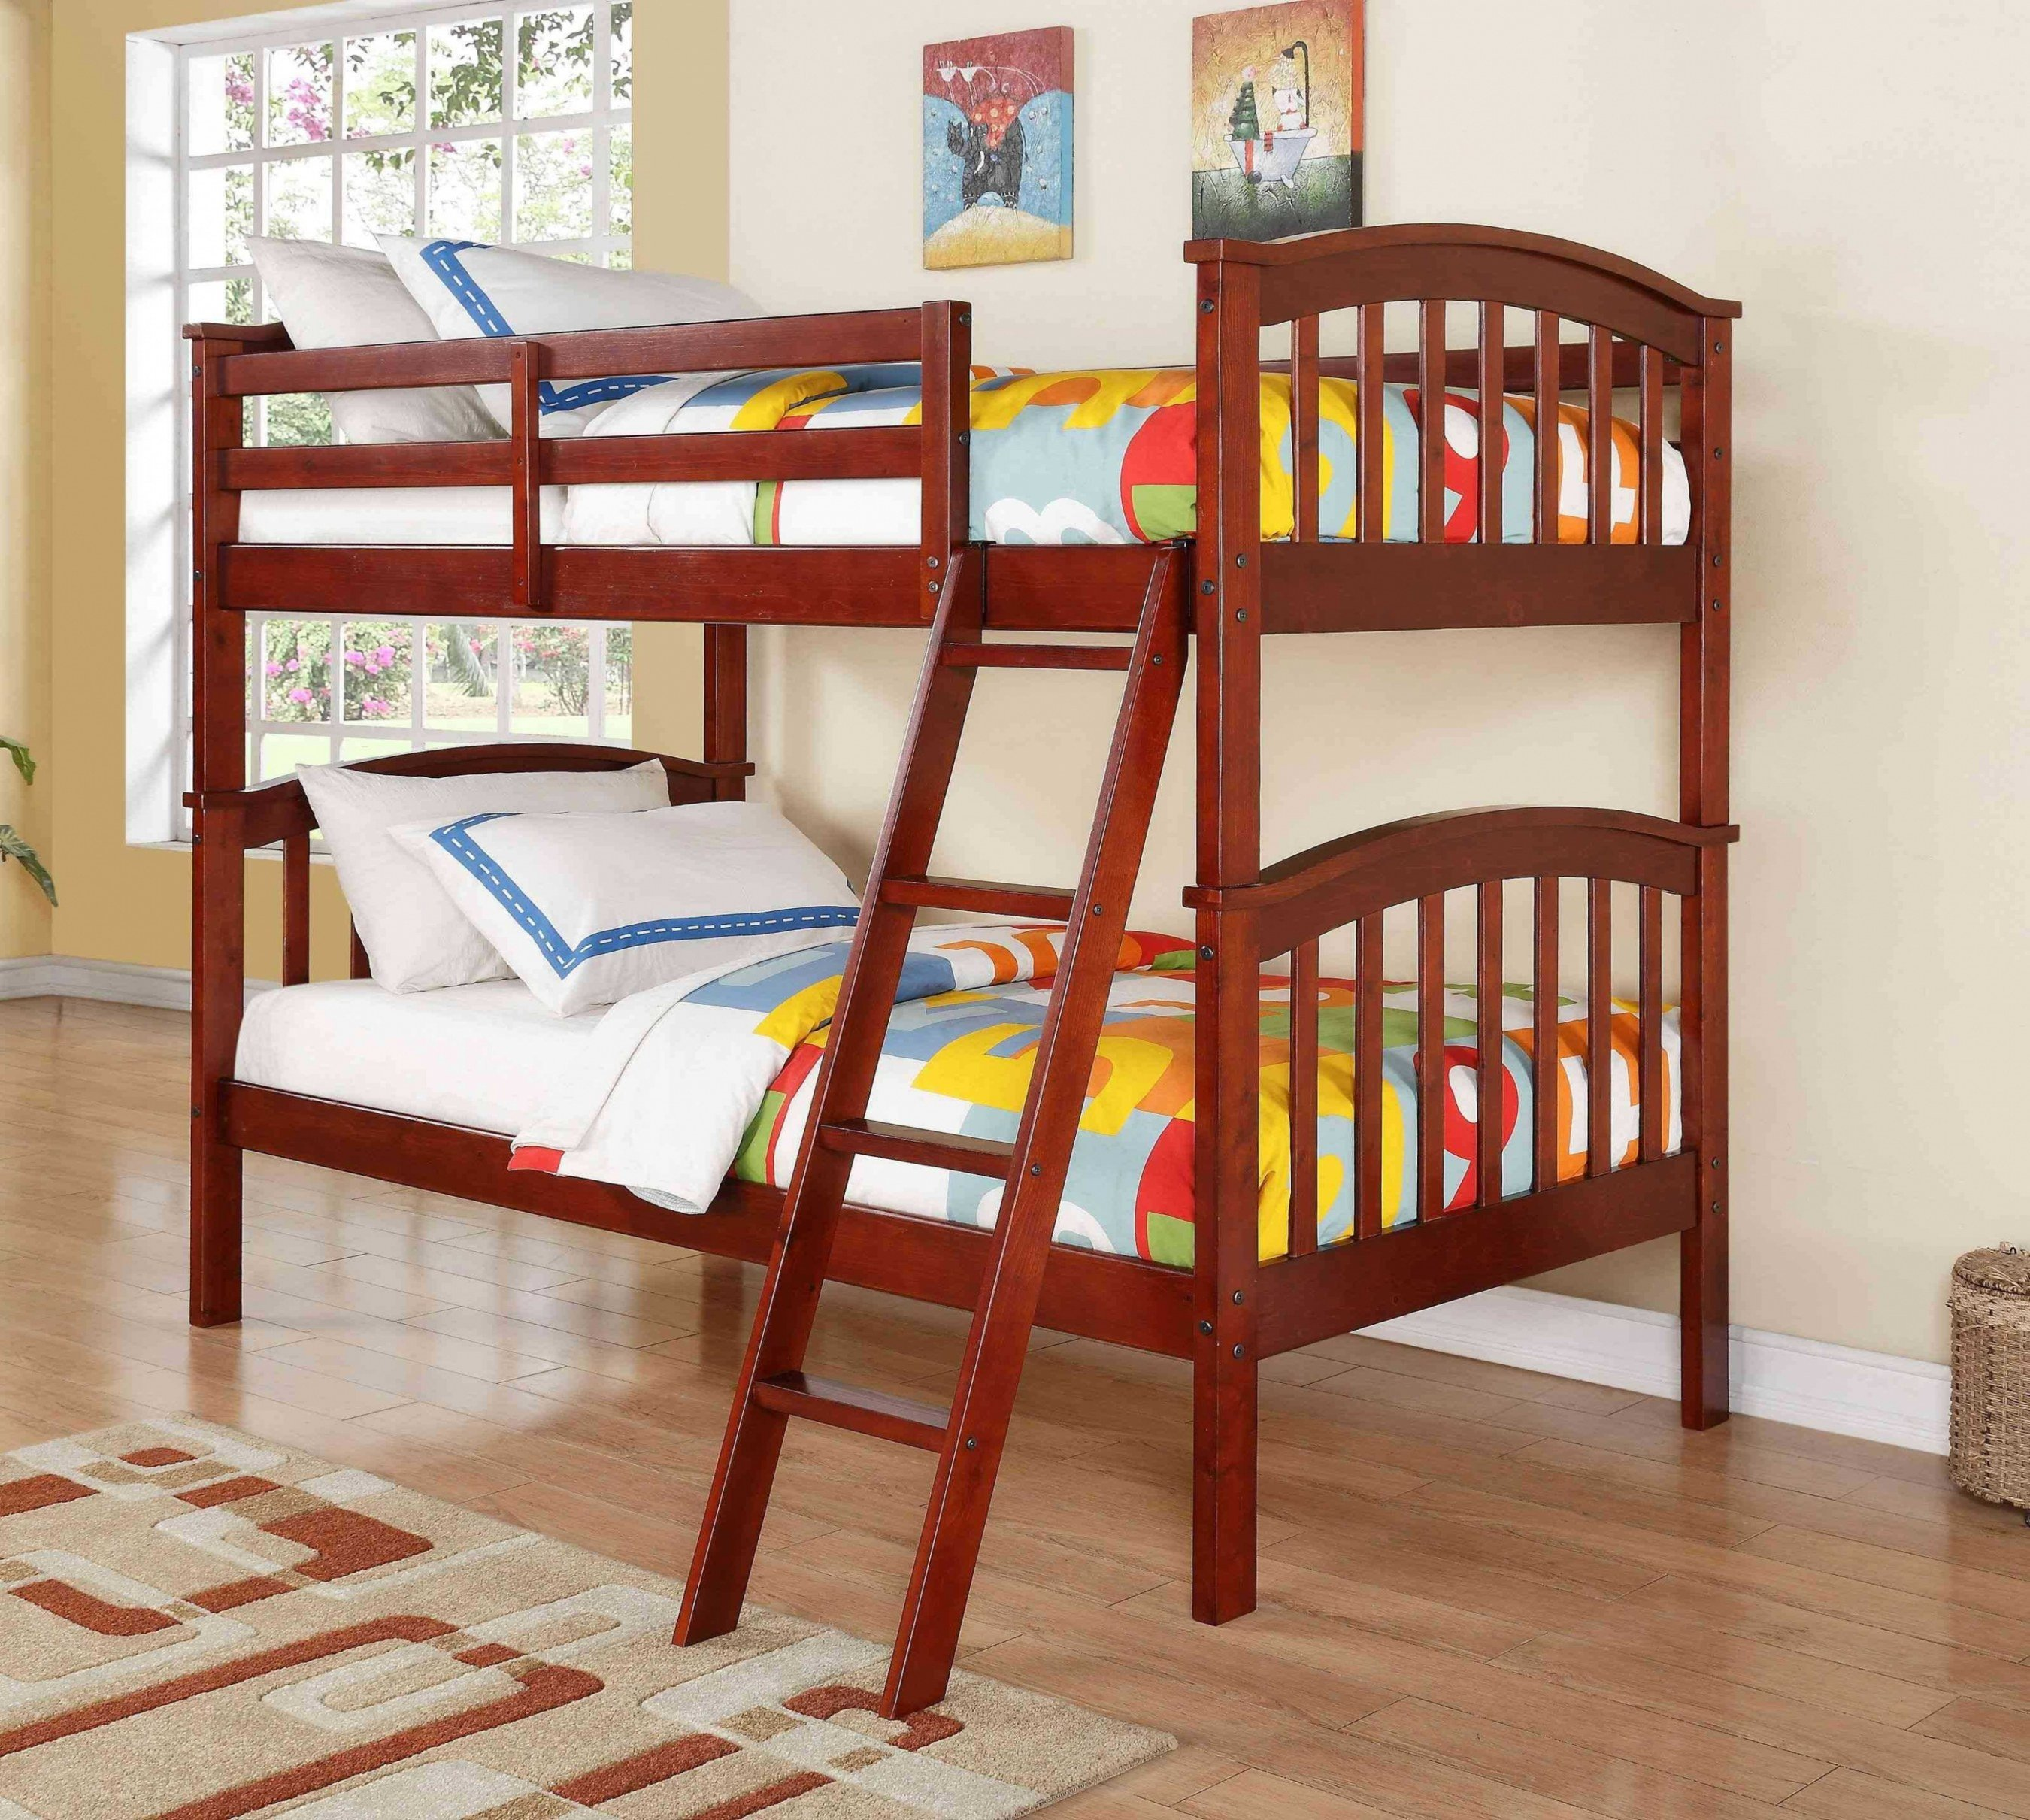 Kids Bunk Bed Bedroom Set Beautiful Tween Loft Bed Adult Twin Bed — Rabbssteak House Home